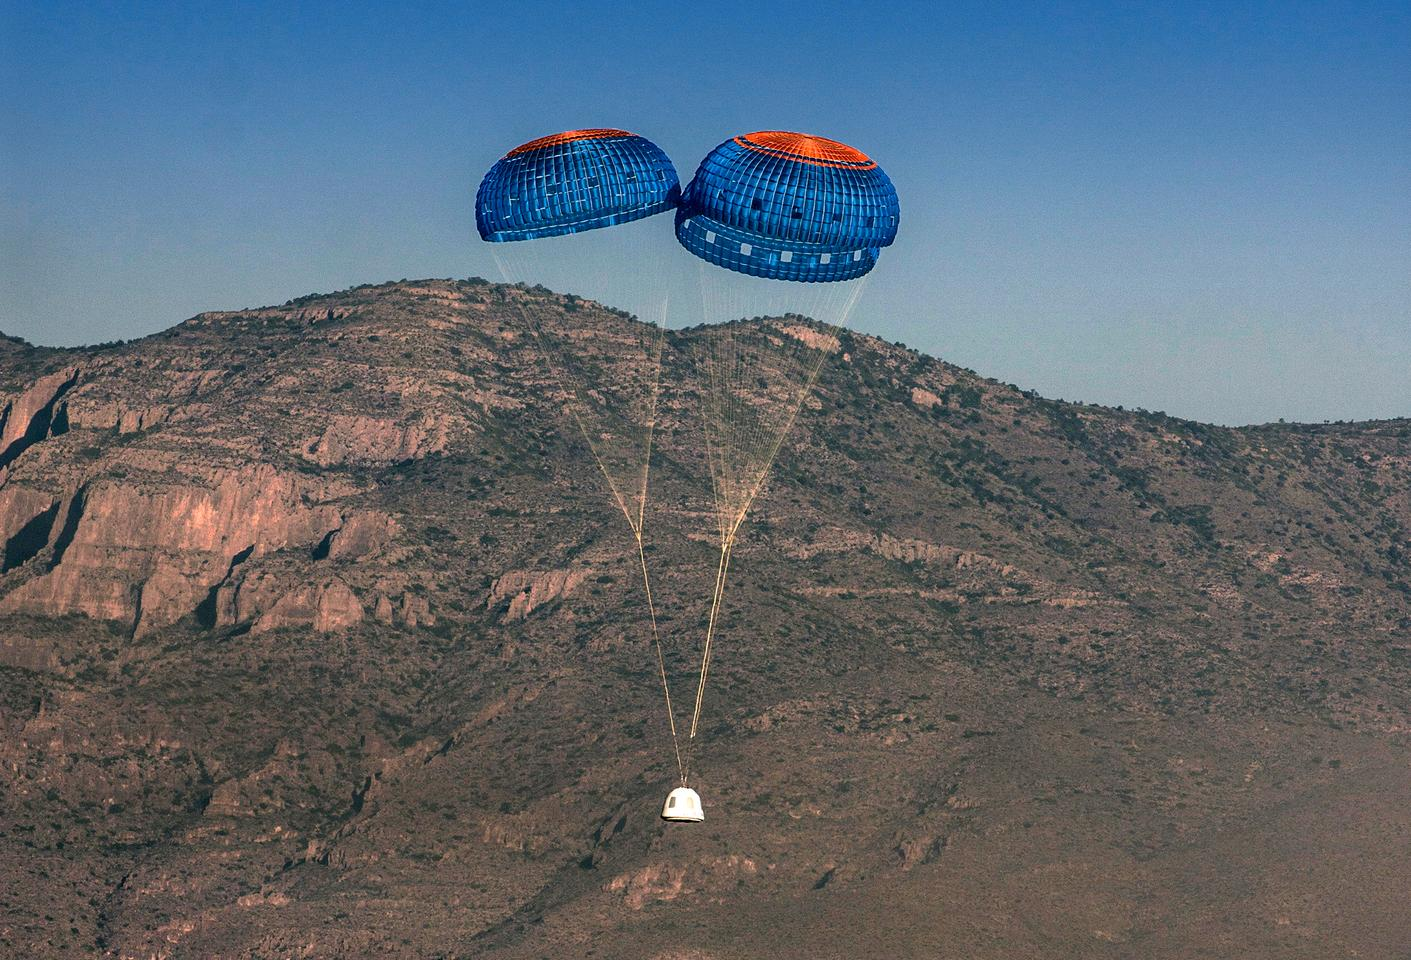 The New Sheperd crew capsule lands safely (Photo: Blue Origin)